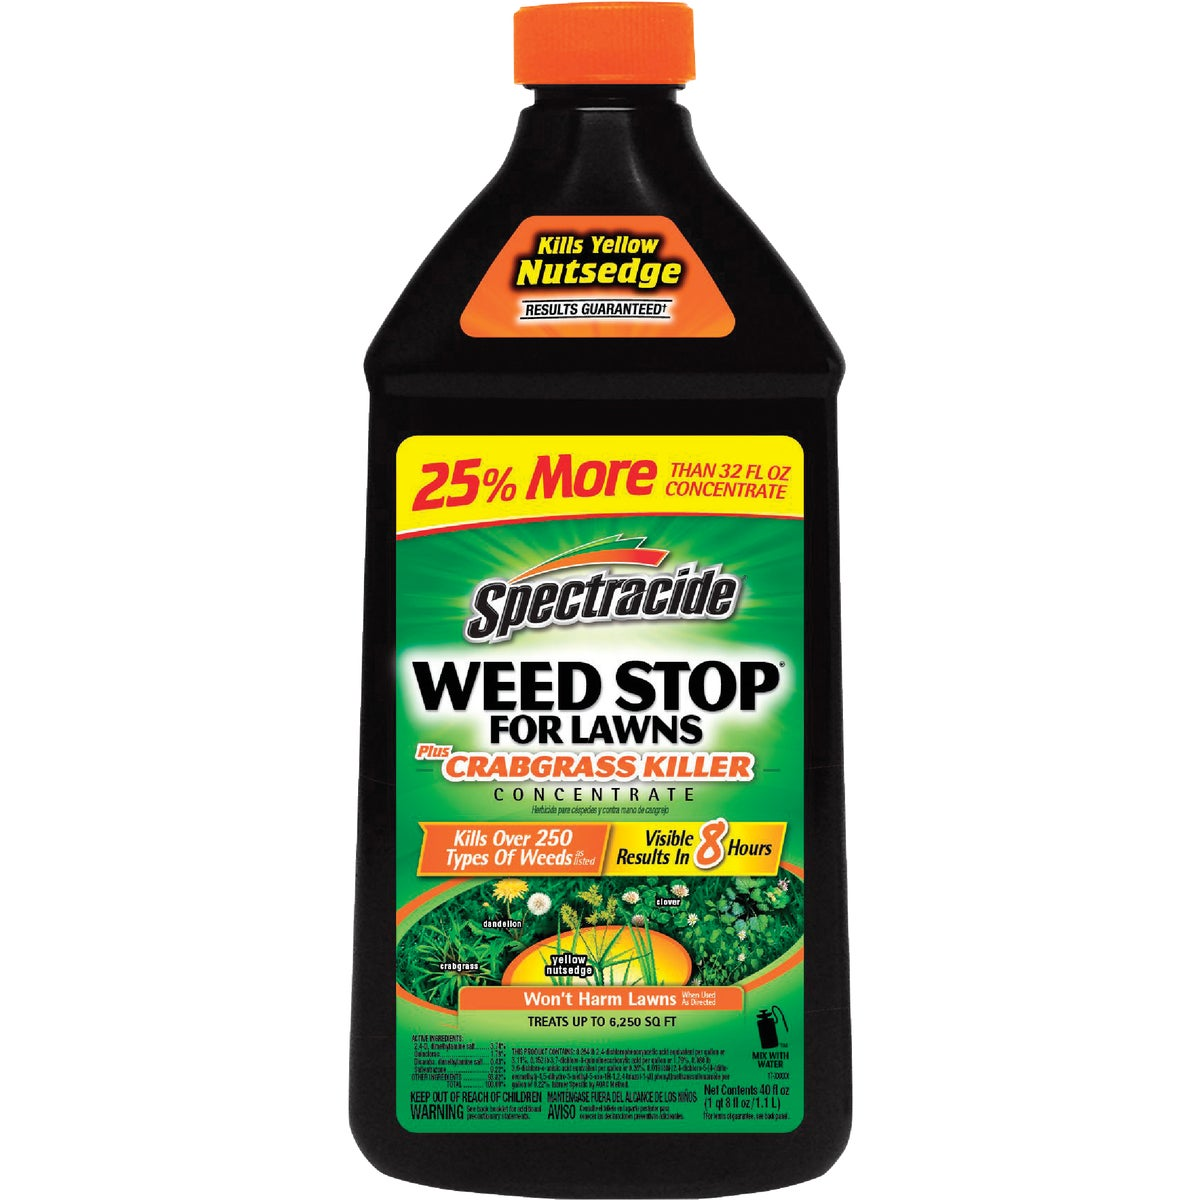 CONC W/CRAB WEED STOP - HG95702 by United Industries Co